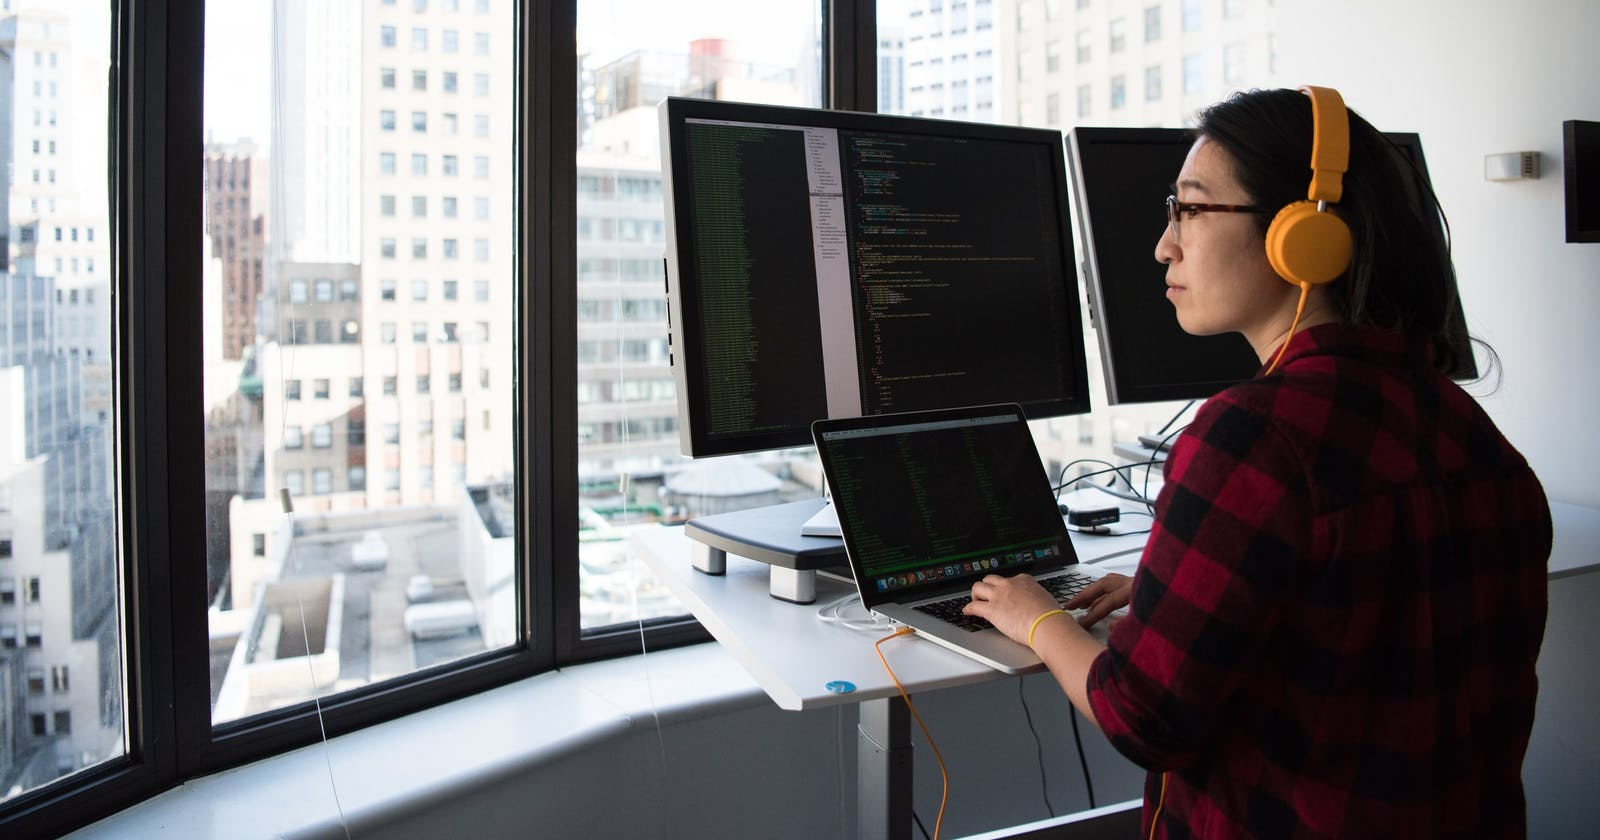 3 must-have non-technical qualities to become a Great Software Engineer